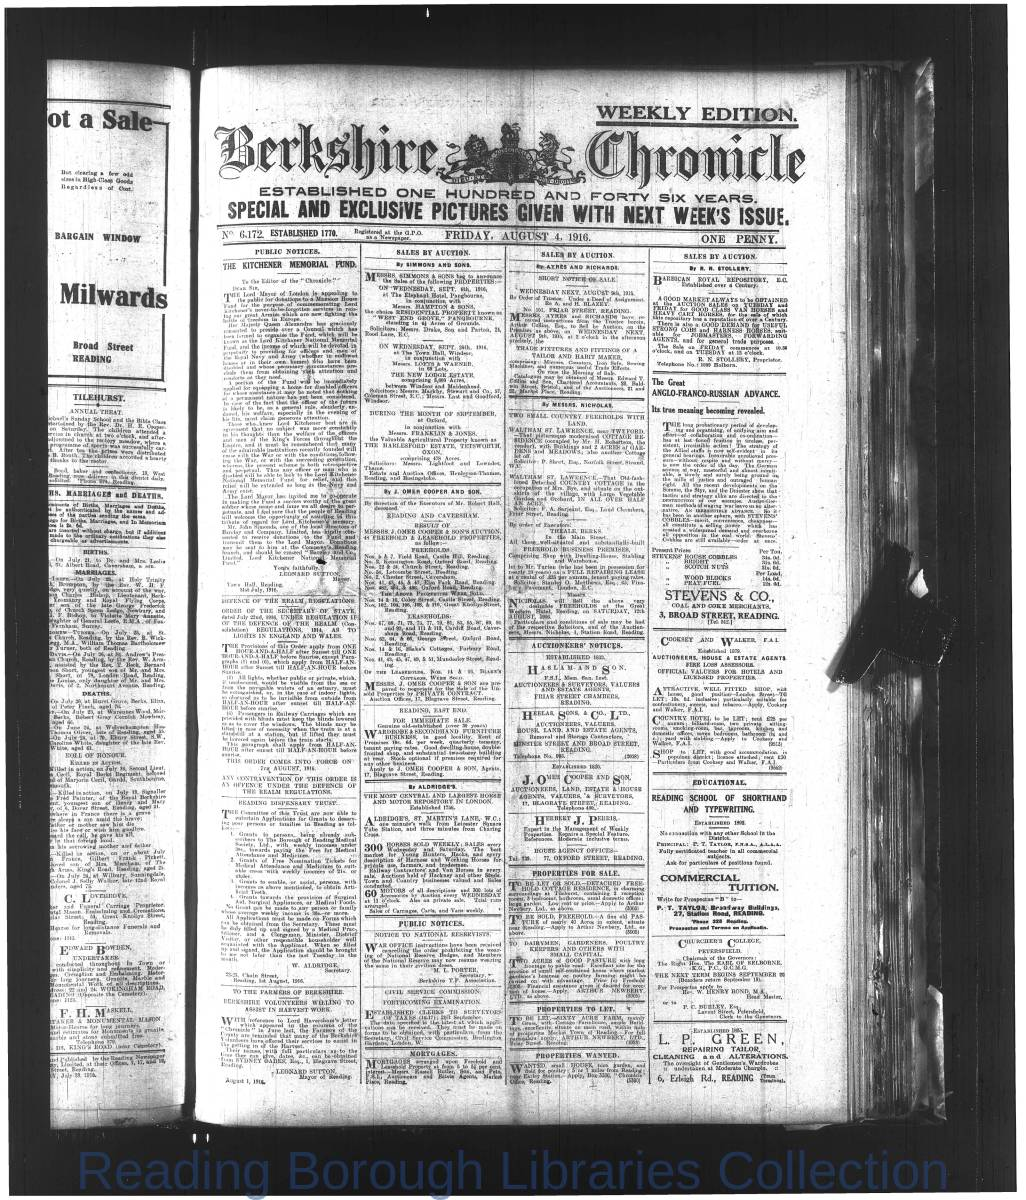 Berkshire Chronicle Reading_04-08-1916_00002.jpg